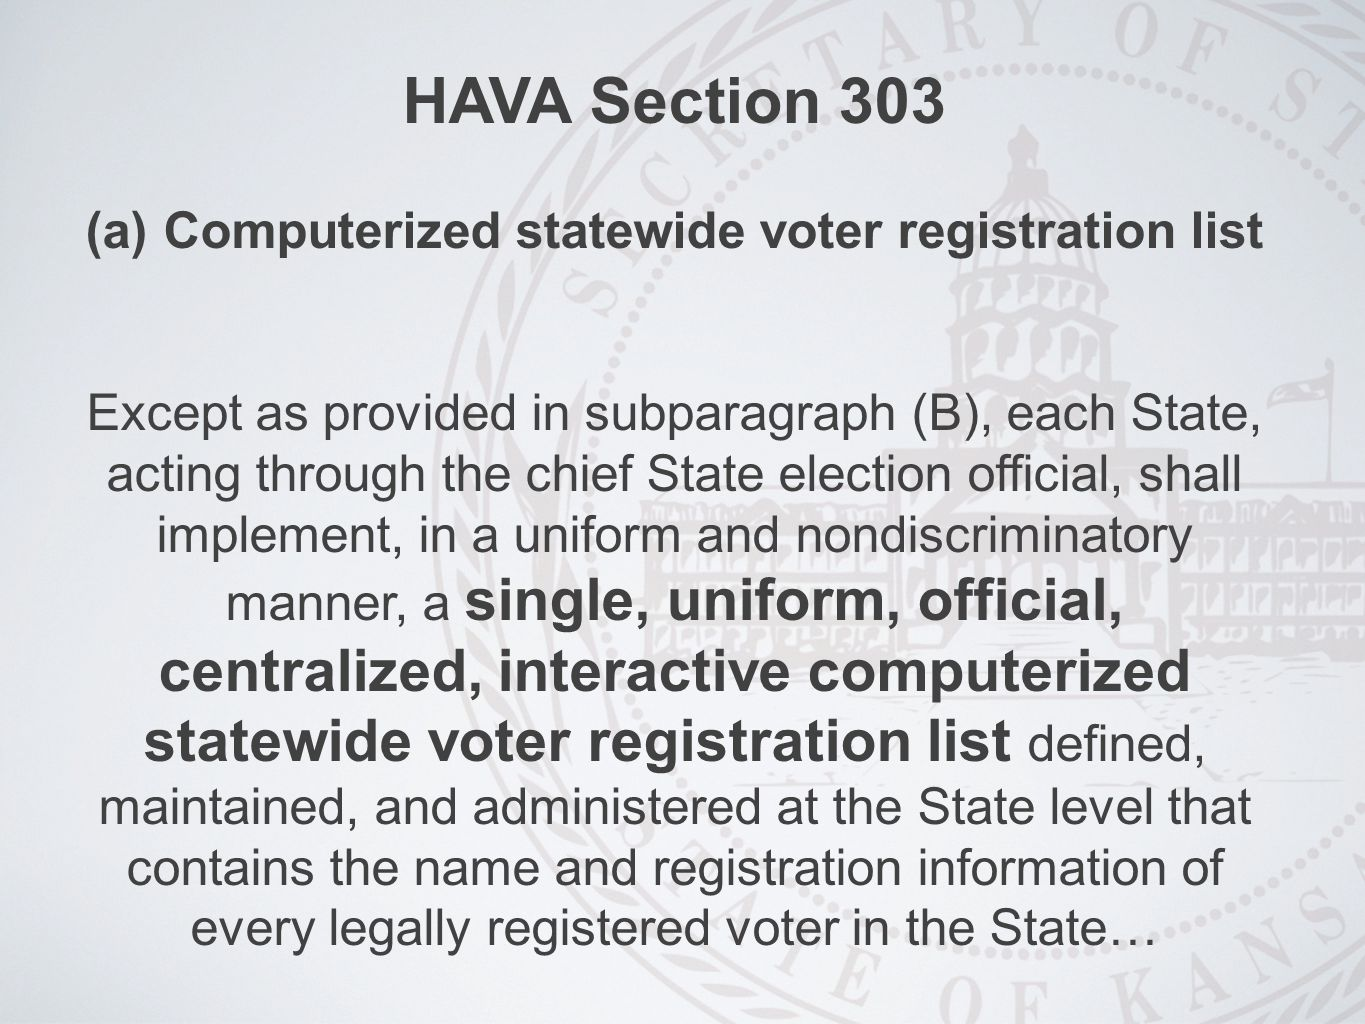 HAVA Section 303 (a)Computerized statewide voter registration list Except as provided in subparagraph (B), each State, acting through the chief State election official, shall implement, in a uniform and nondiscriminatory manner, a single, uniform, official, centralized, interactive computerized statewide voter registration list defined, maintained, and administered at the State level that contains the name and registration information of every legally registered voter in the State…